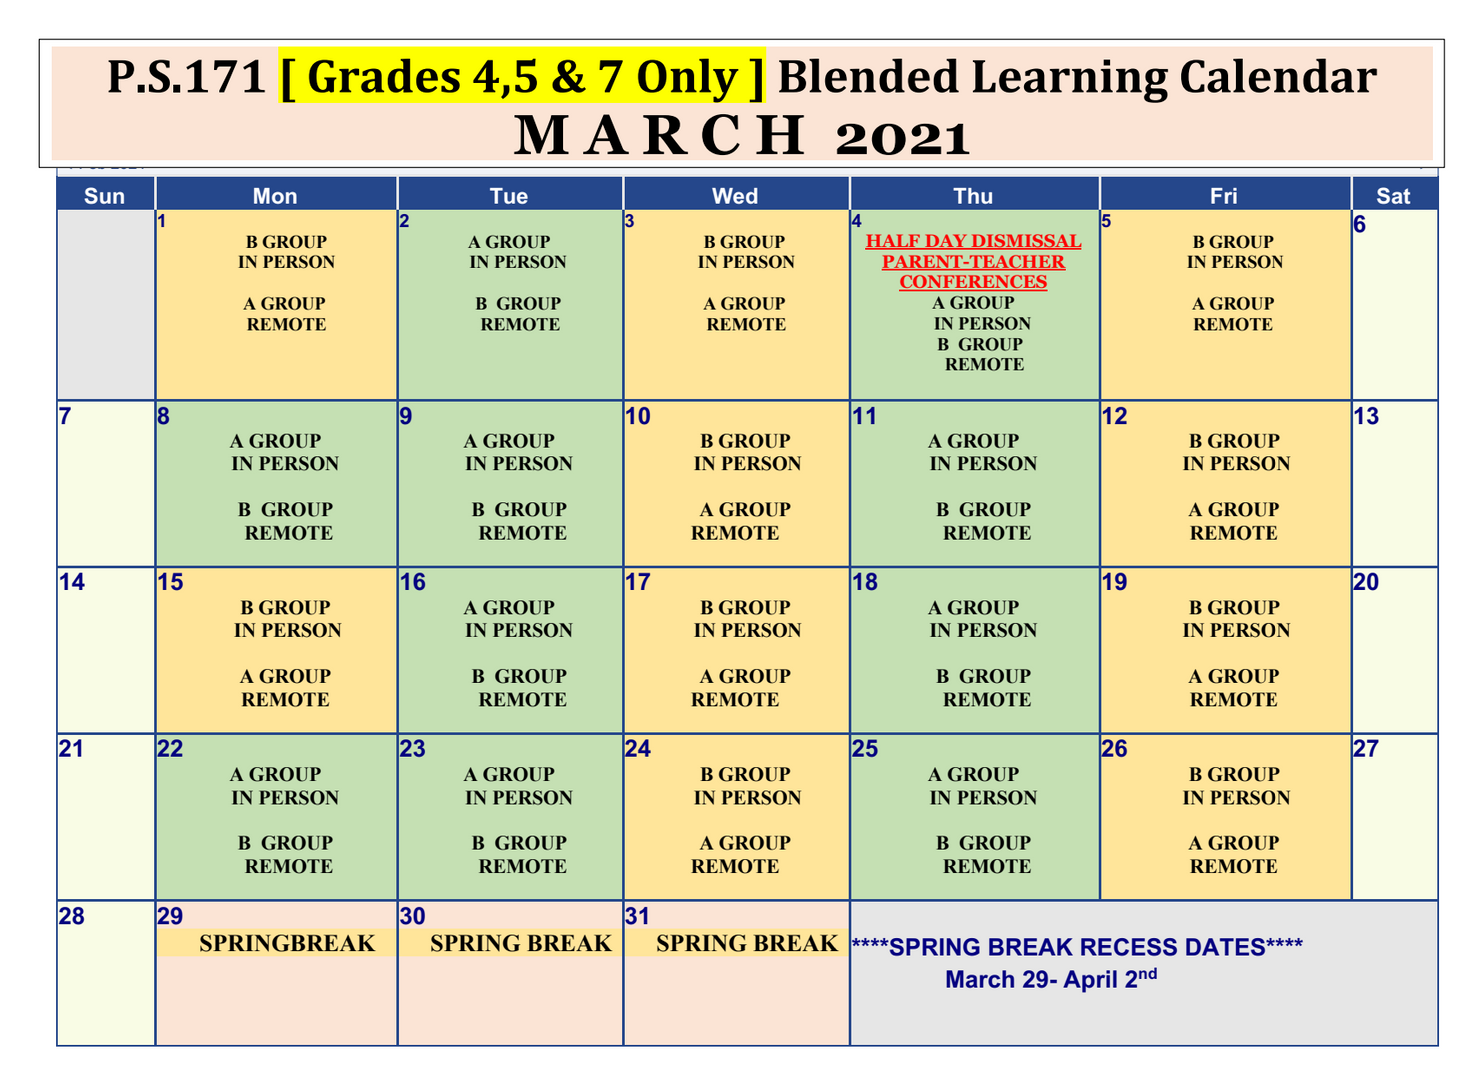 March Blended Learning Calendar for Students in Grades 4,5, & 7